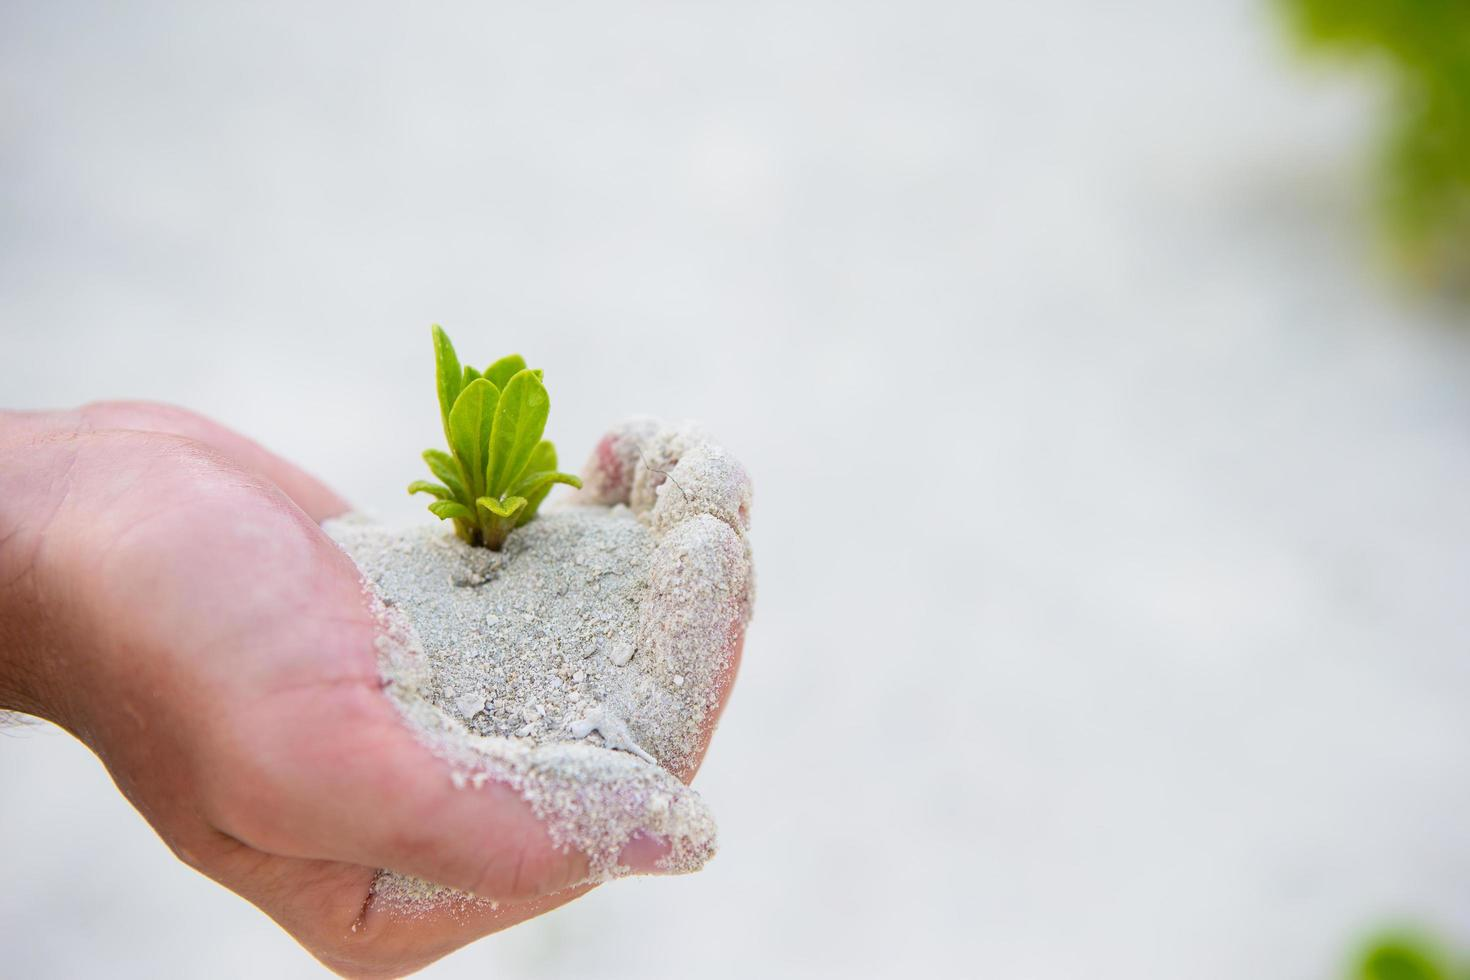 Hands holding green sapling in white sand photo